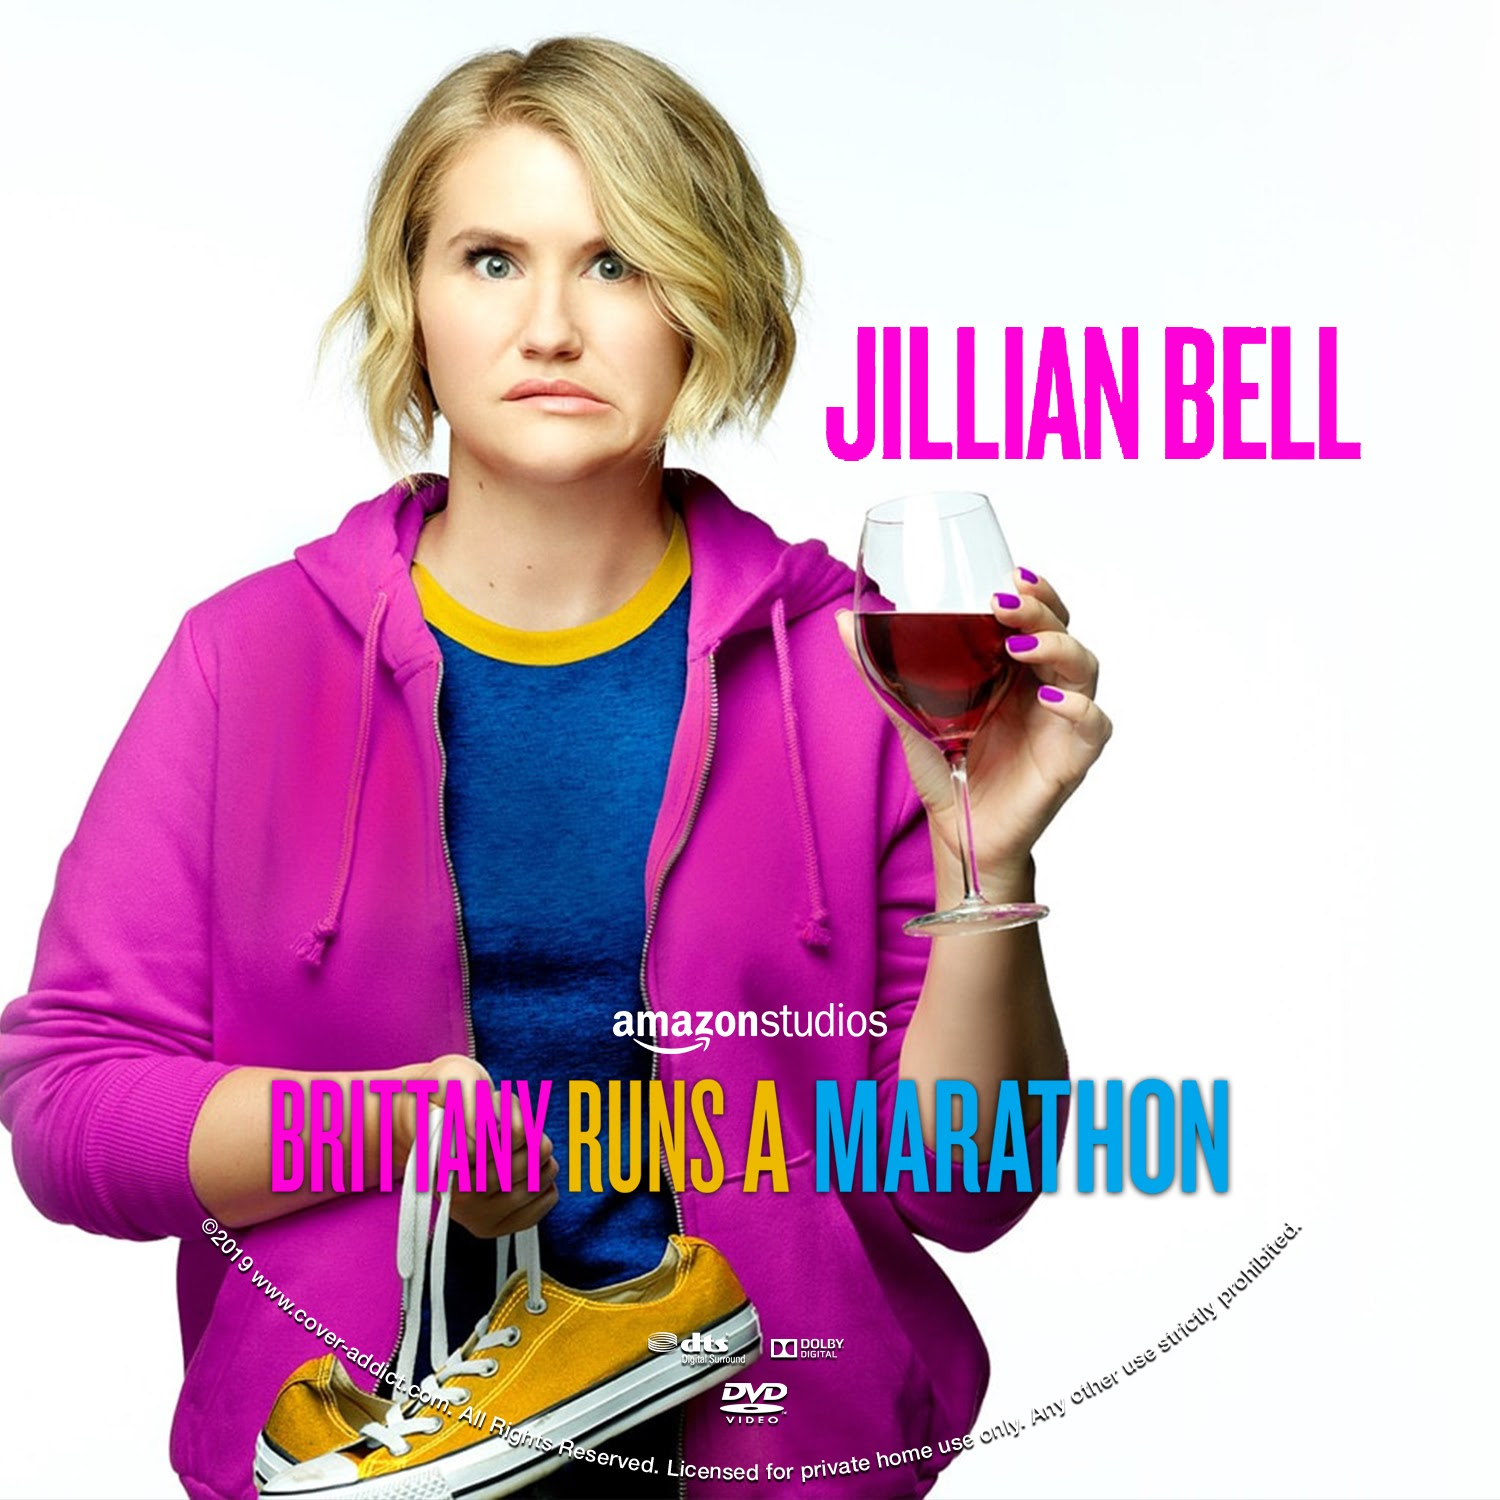 Brittany Runs A Marathon Dvd Label Cover Addict Free Dvd Bluray Covers And Movie Posters